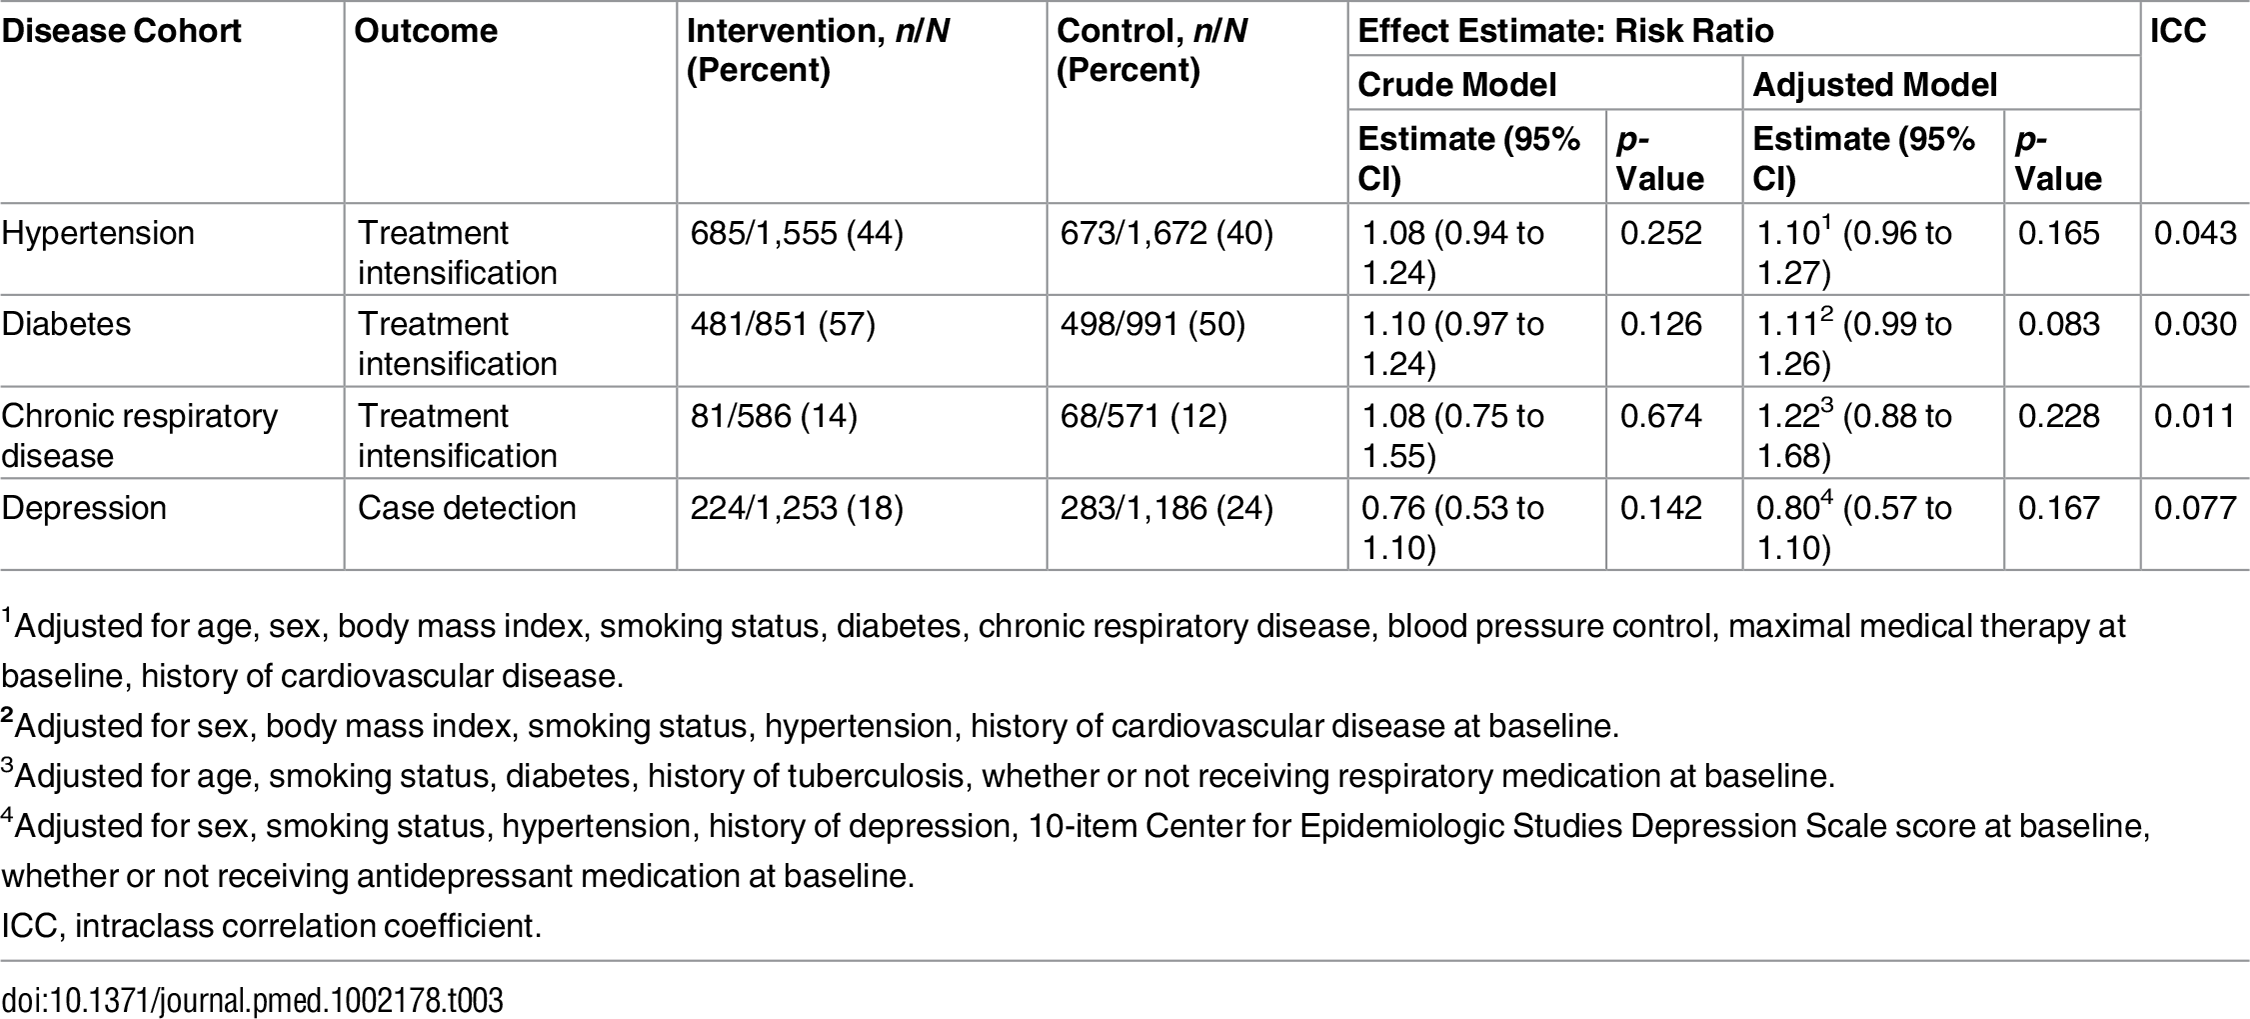 Primary outcomes for each disease cohort.